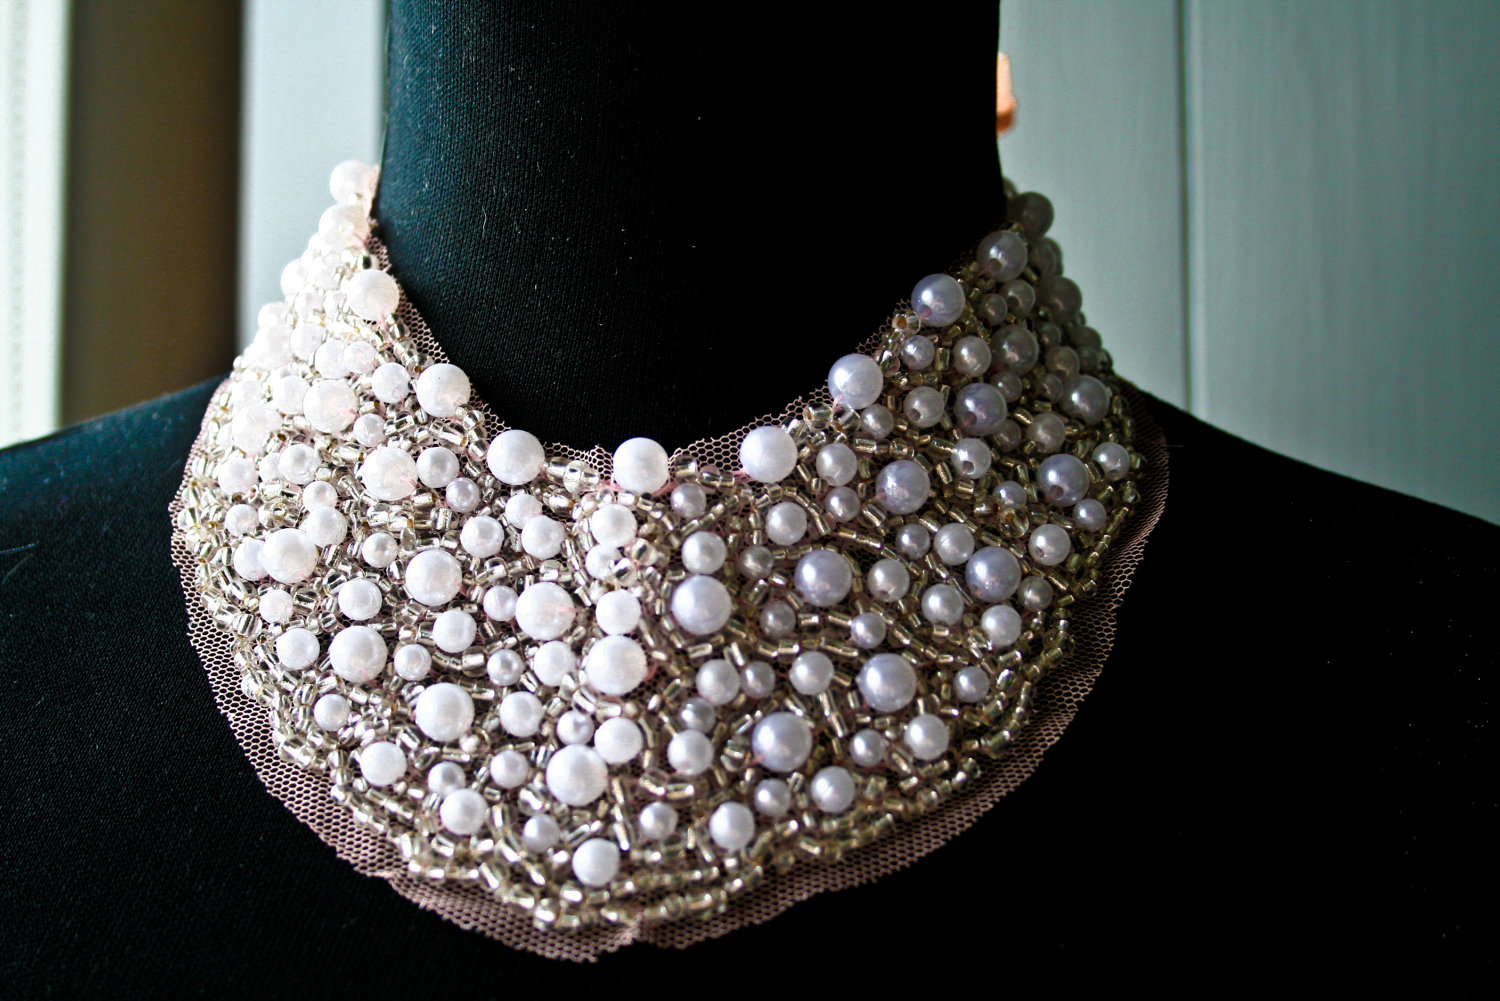 Pearl-wedding-accessories-handmade-etsy-wedding-finds-bib-necklace.original